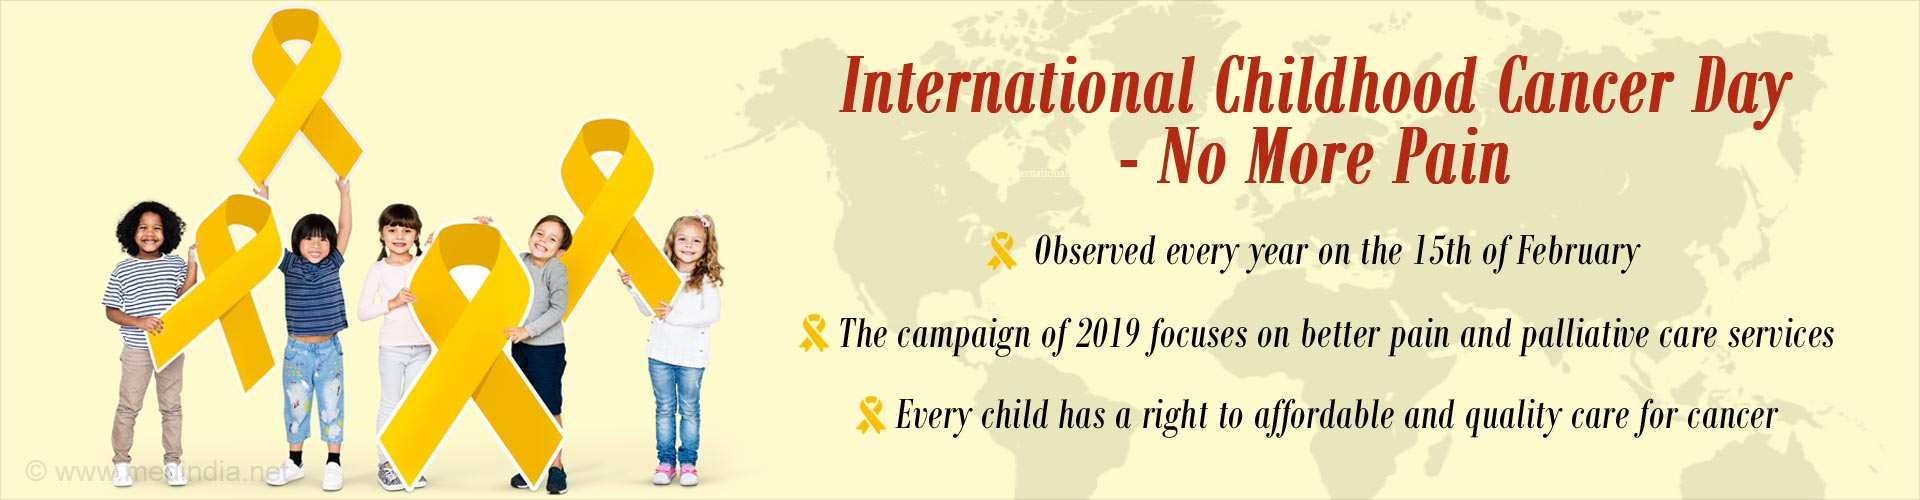 International Childhood Cancer Day - Even One Child's Death Is Not Acceptable